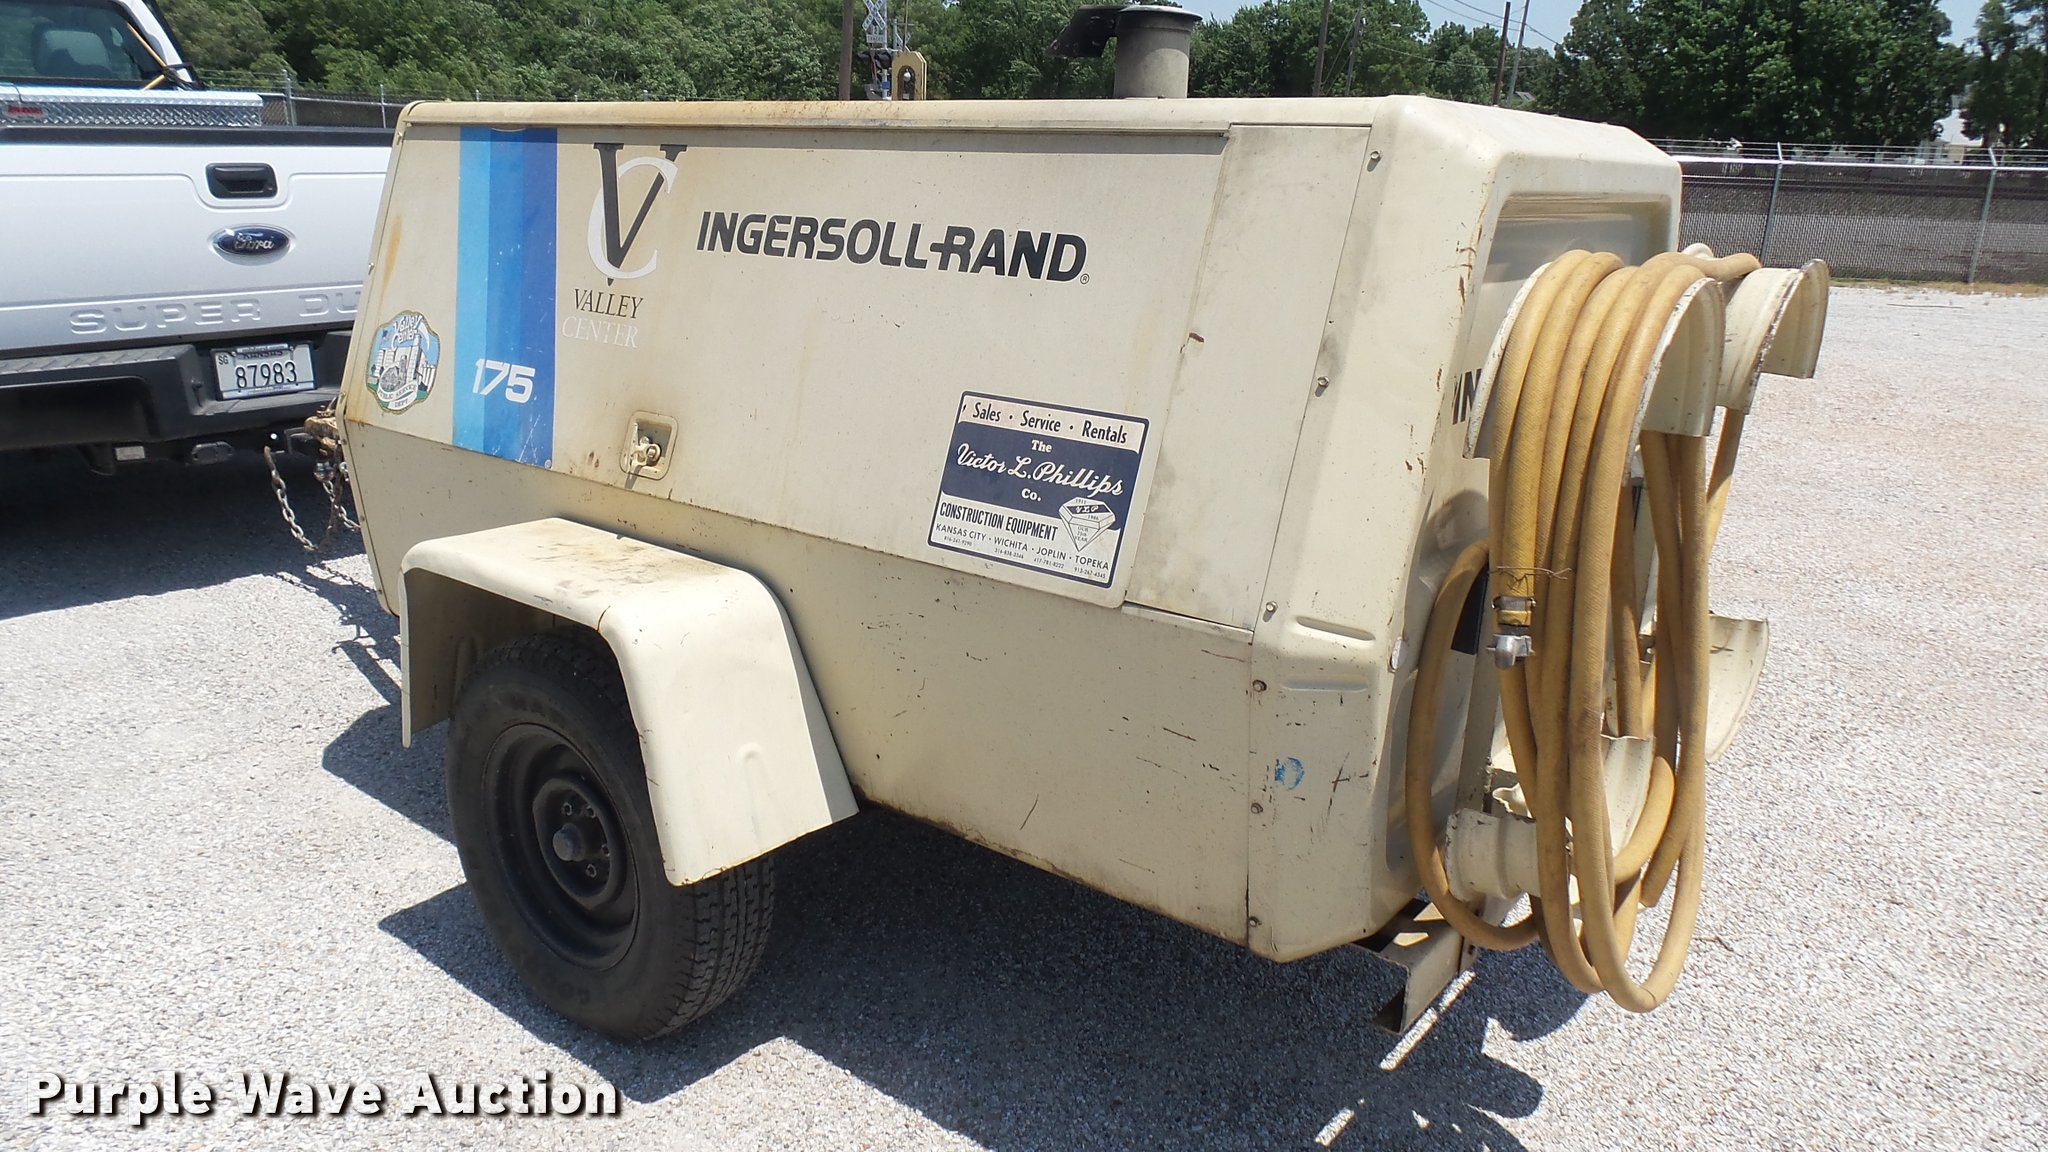 ... Ingersoll Rand 175 air compressor Full size in new window ...